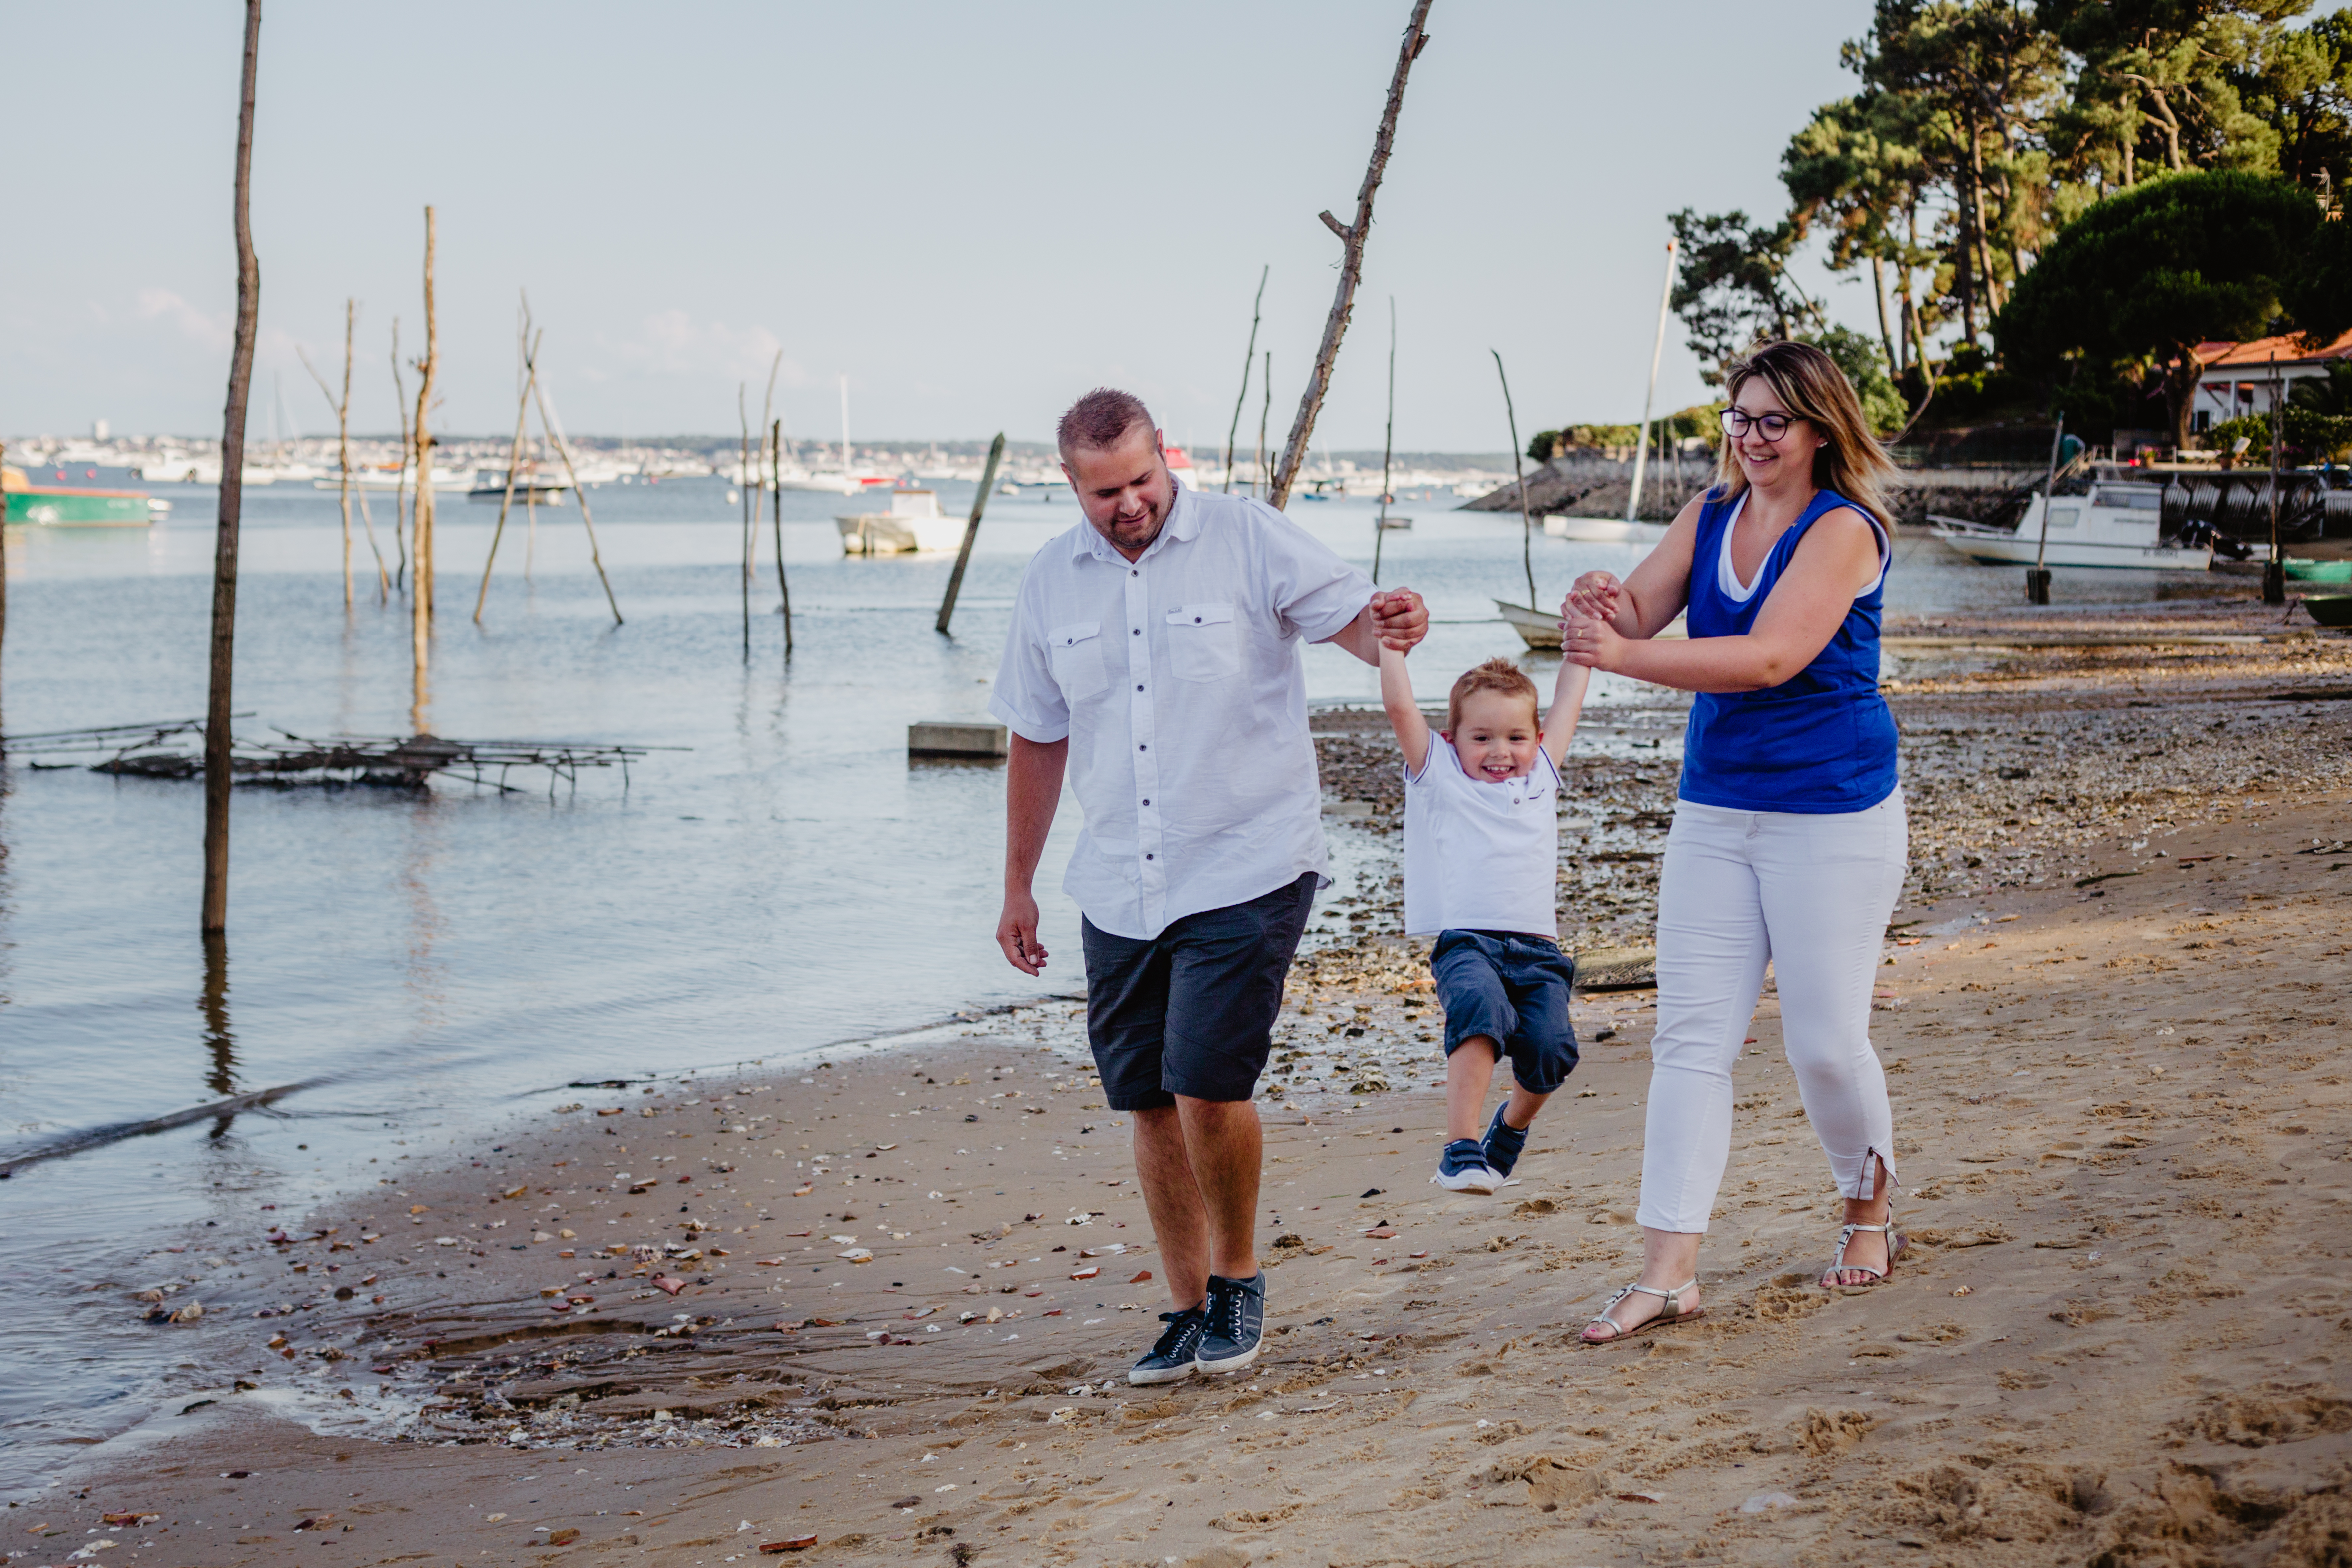 Shooting famille bassin d'arcachon